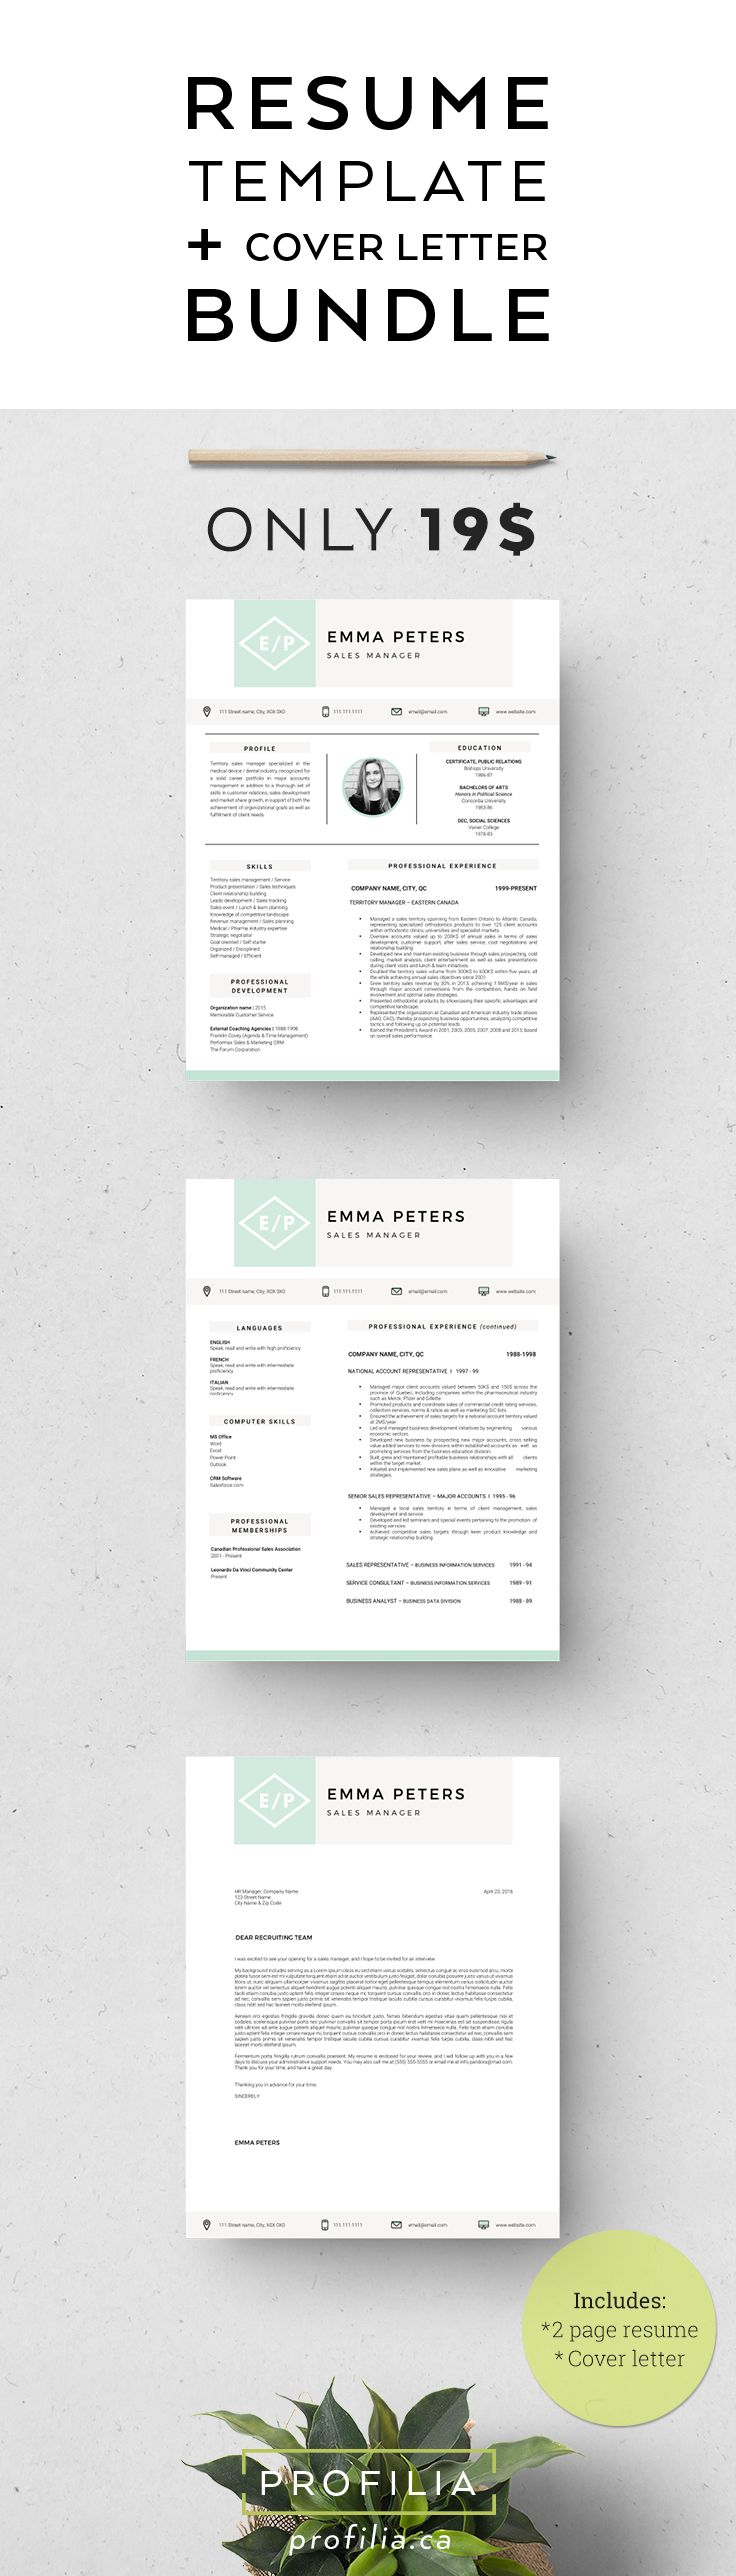 25 unique cover letter format ideas on pinterest cover letter format examples resume cover letter examples and professional cover letter